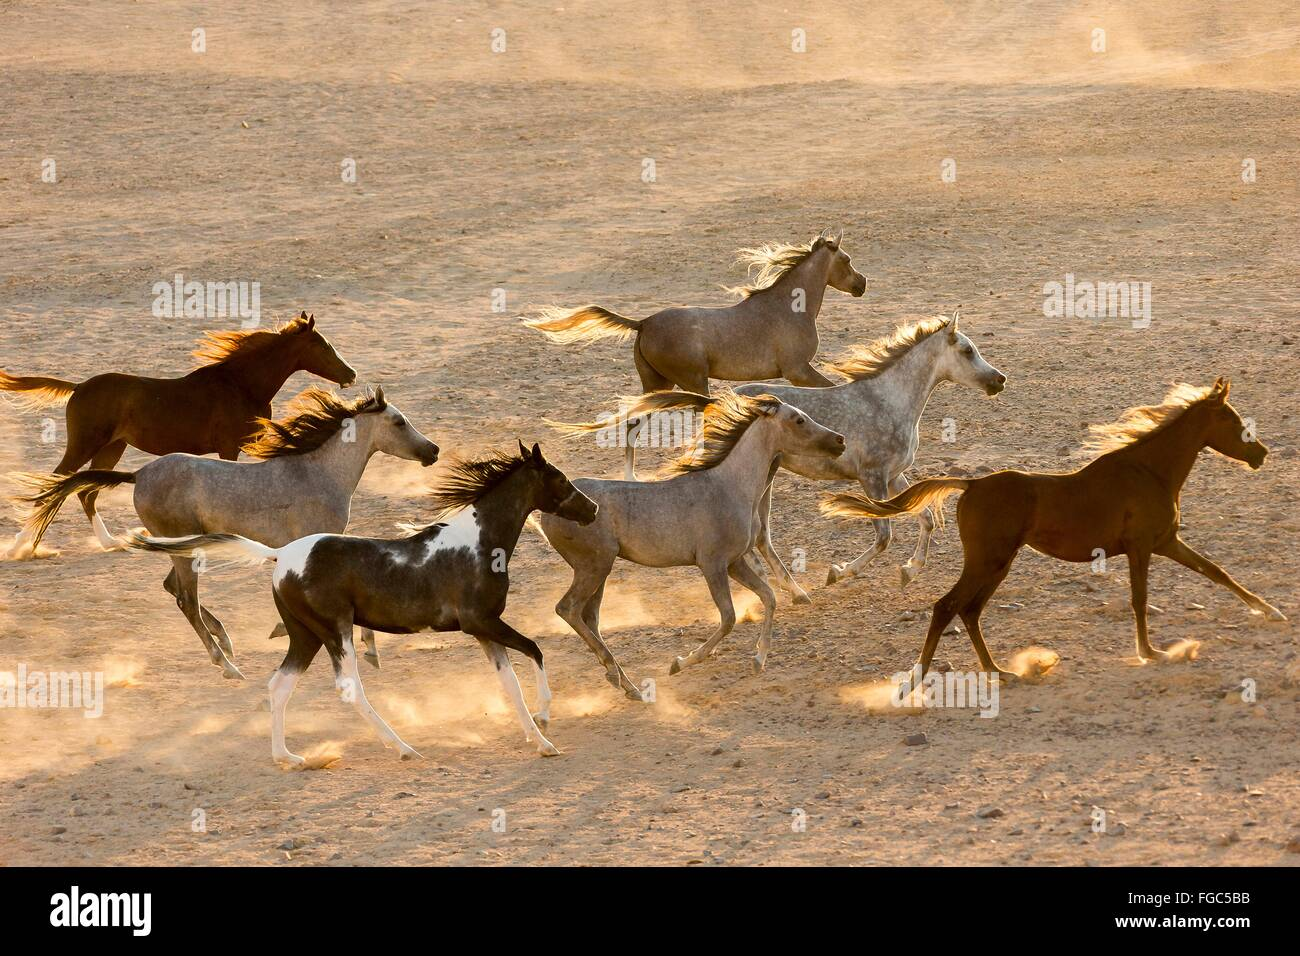 Arabian Horse. Herd galloping in the desert in evening ...